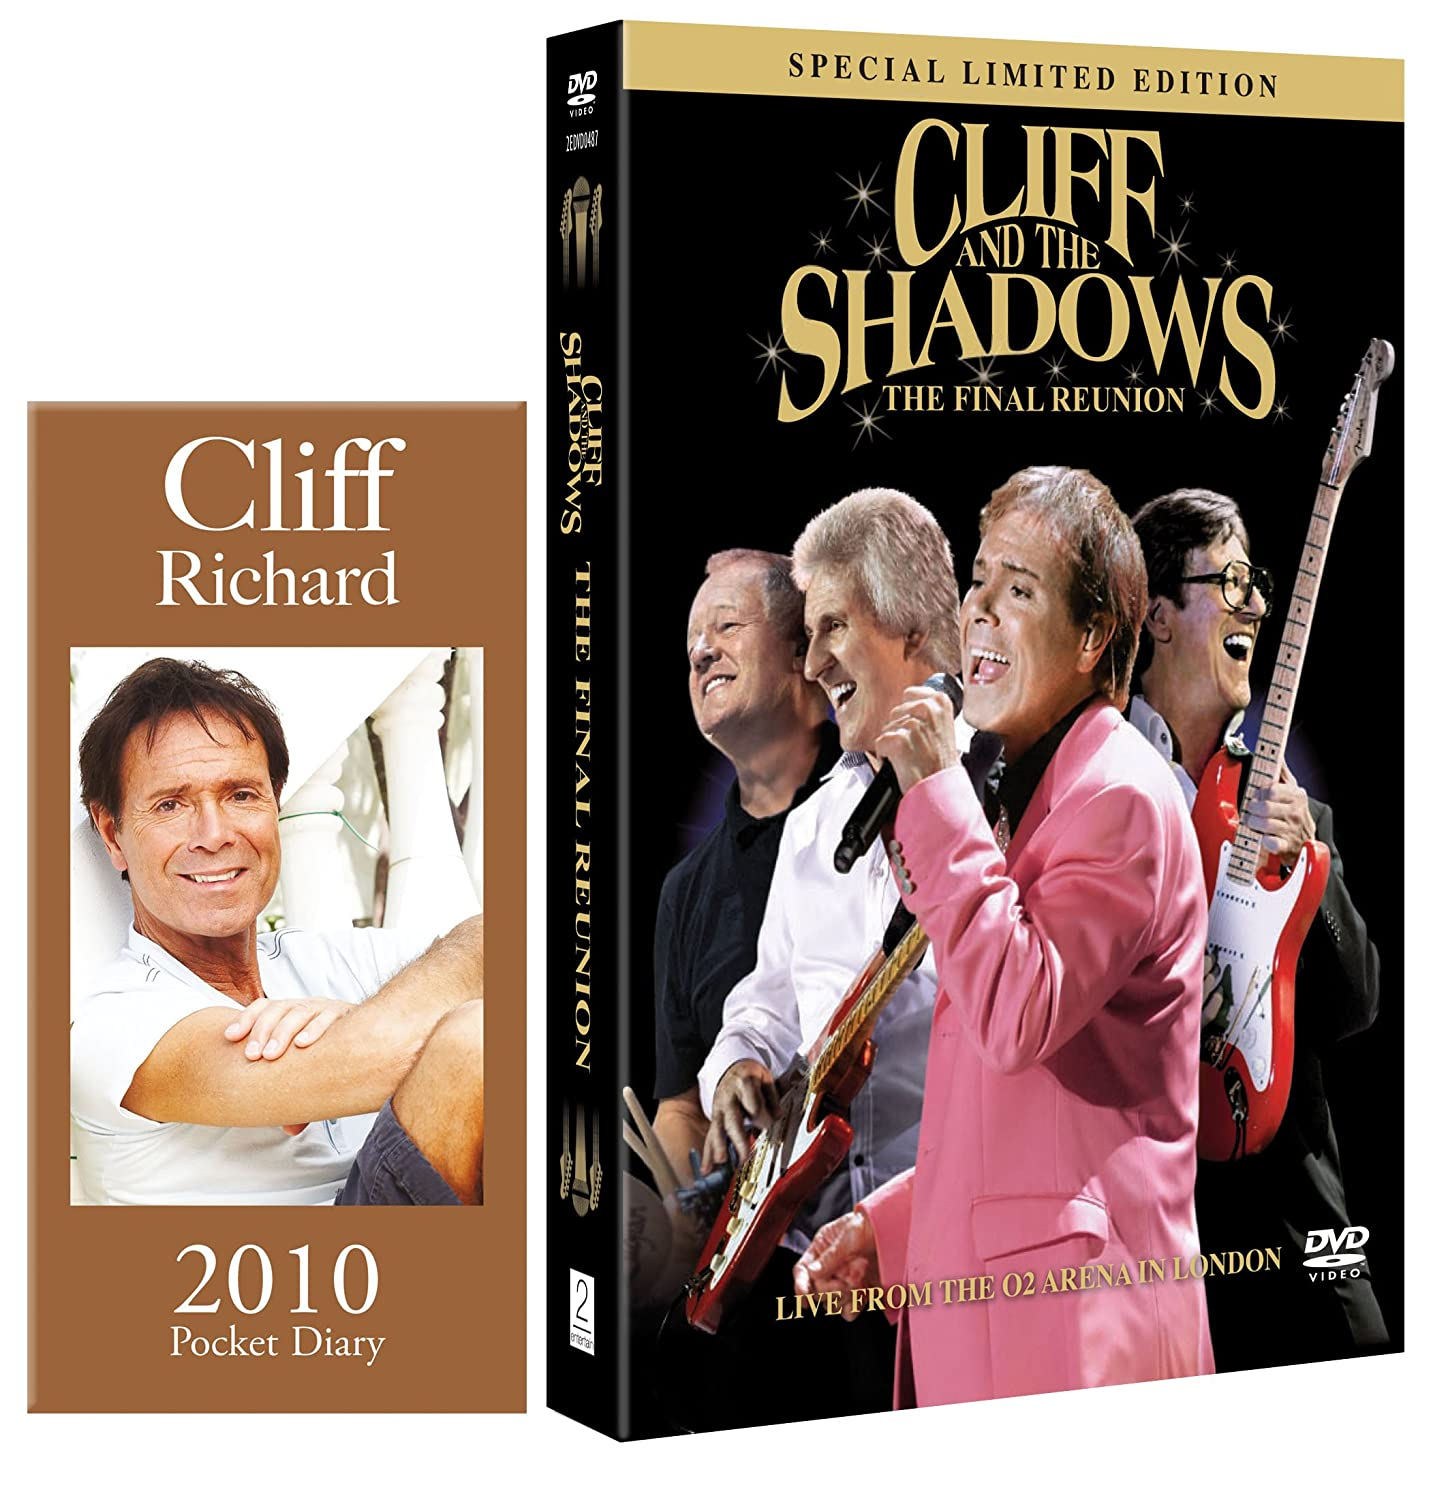 Cliff richard plus the shadows special edition e p dvd | ebay.